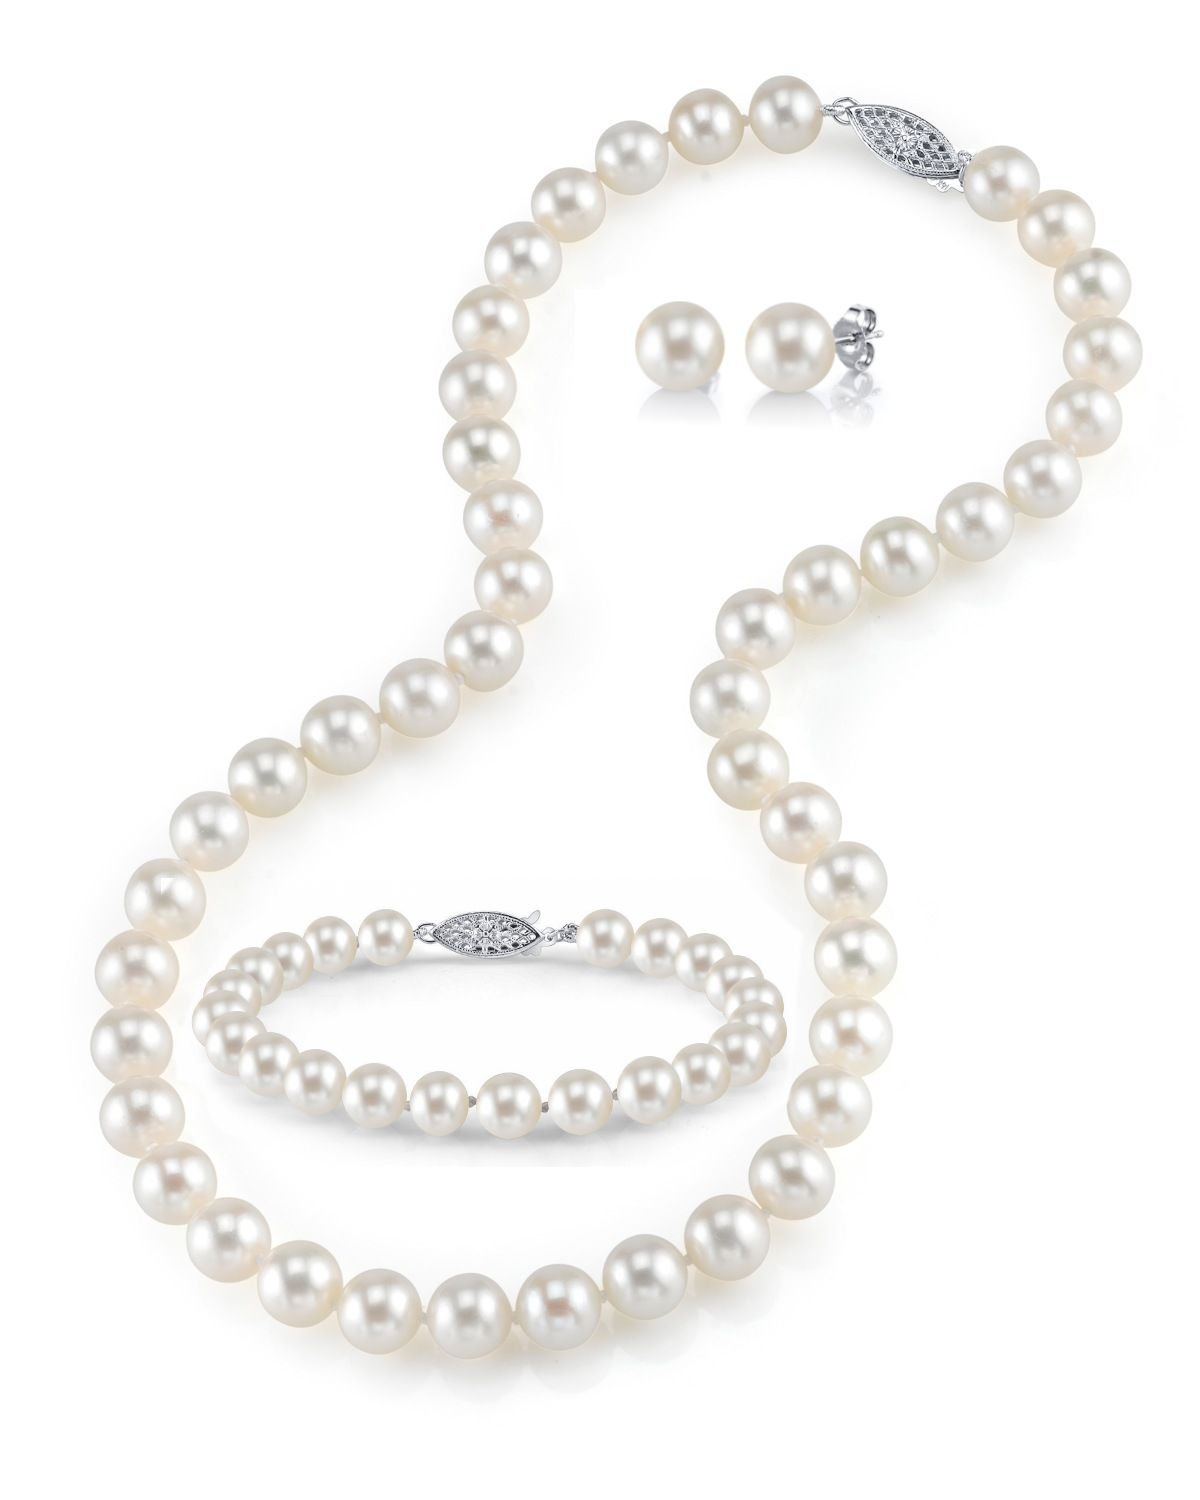 14K Gold 7-8mm White Freshwater Cultured Pearl Necklace, Bracelet & Earrings Set, 17'' - AAA Quality